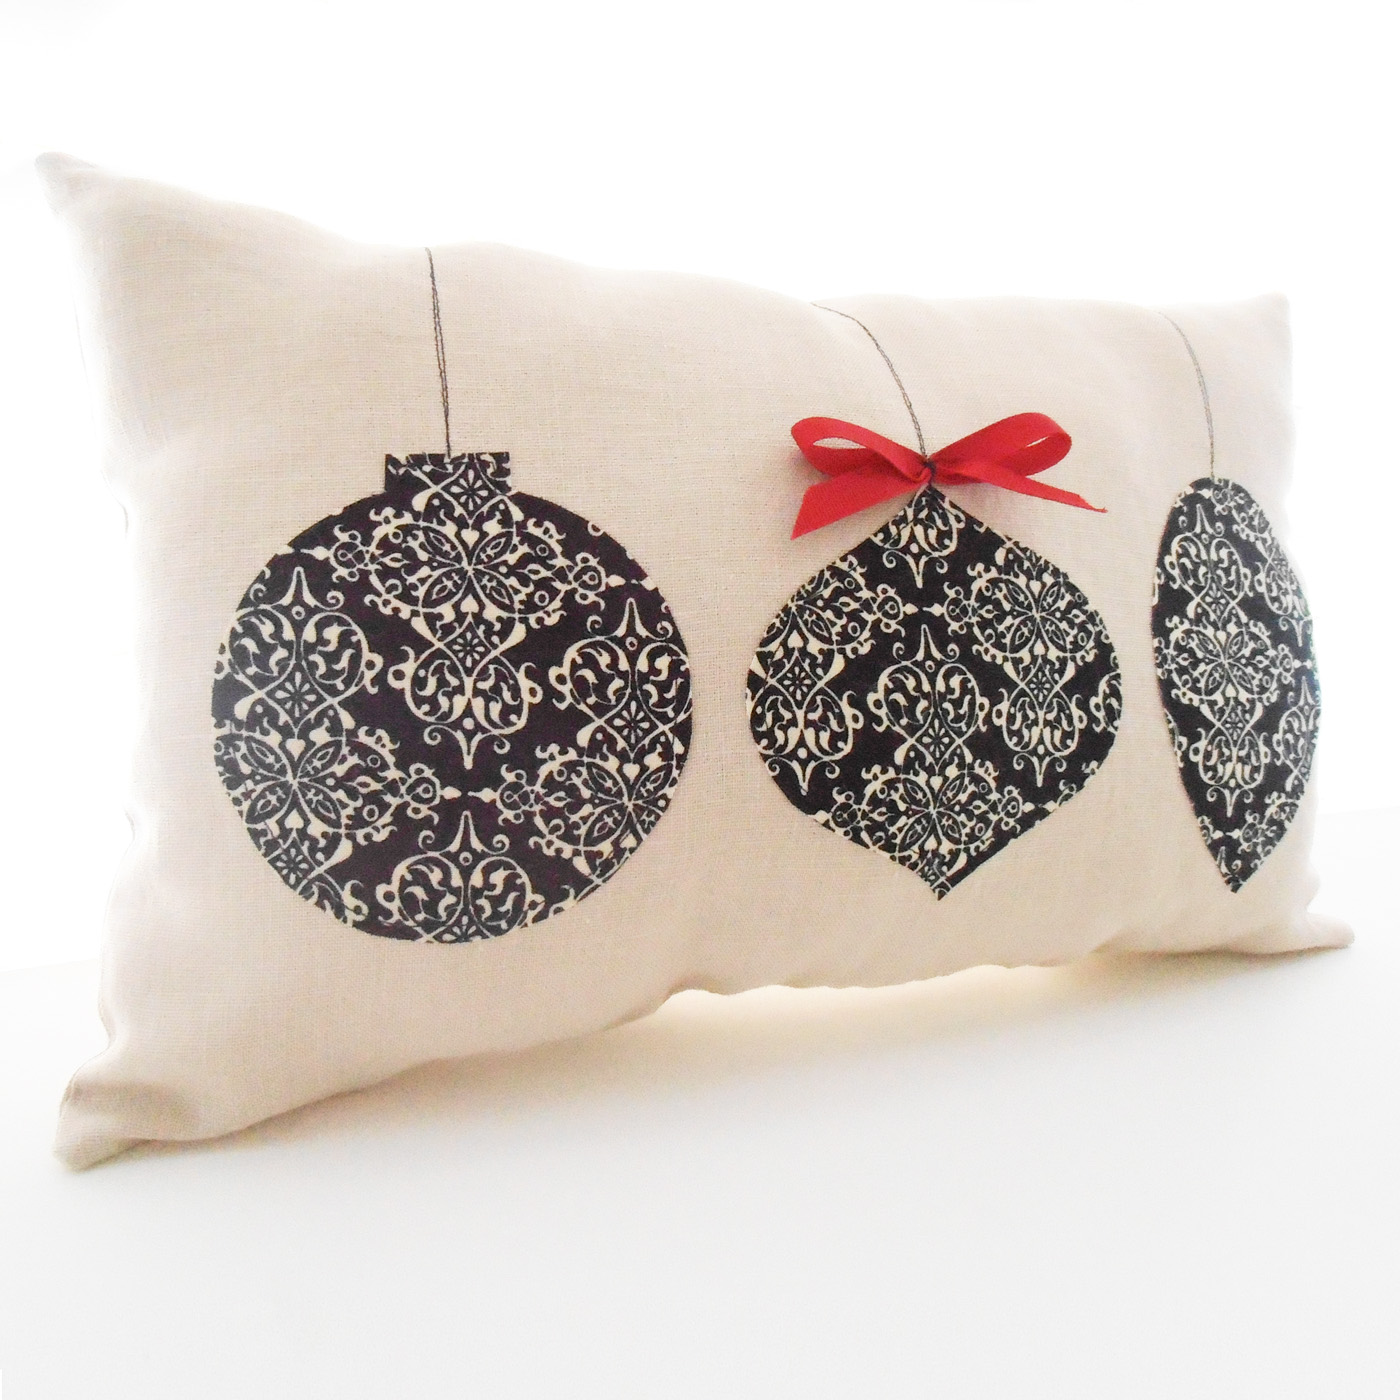 Tallgrass Design: Christmas Pillows